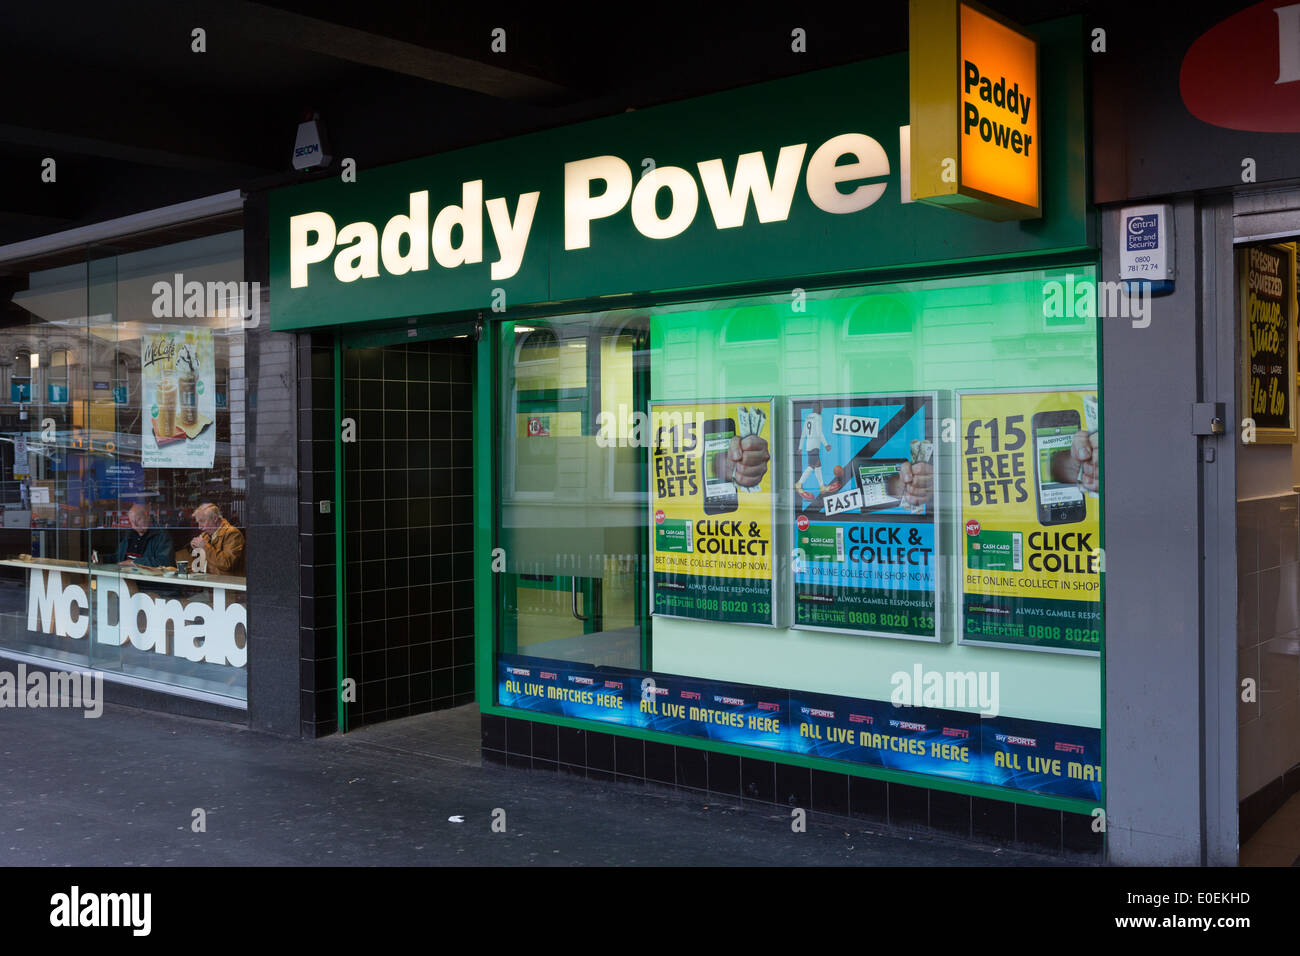 The front of a Paddy Power betting shop - Stock Image